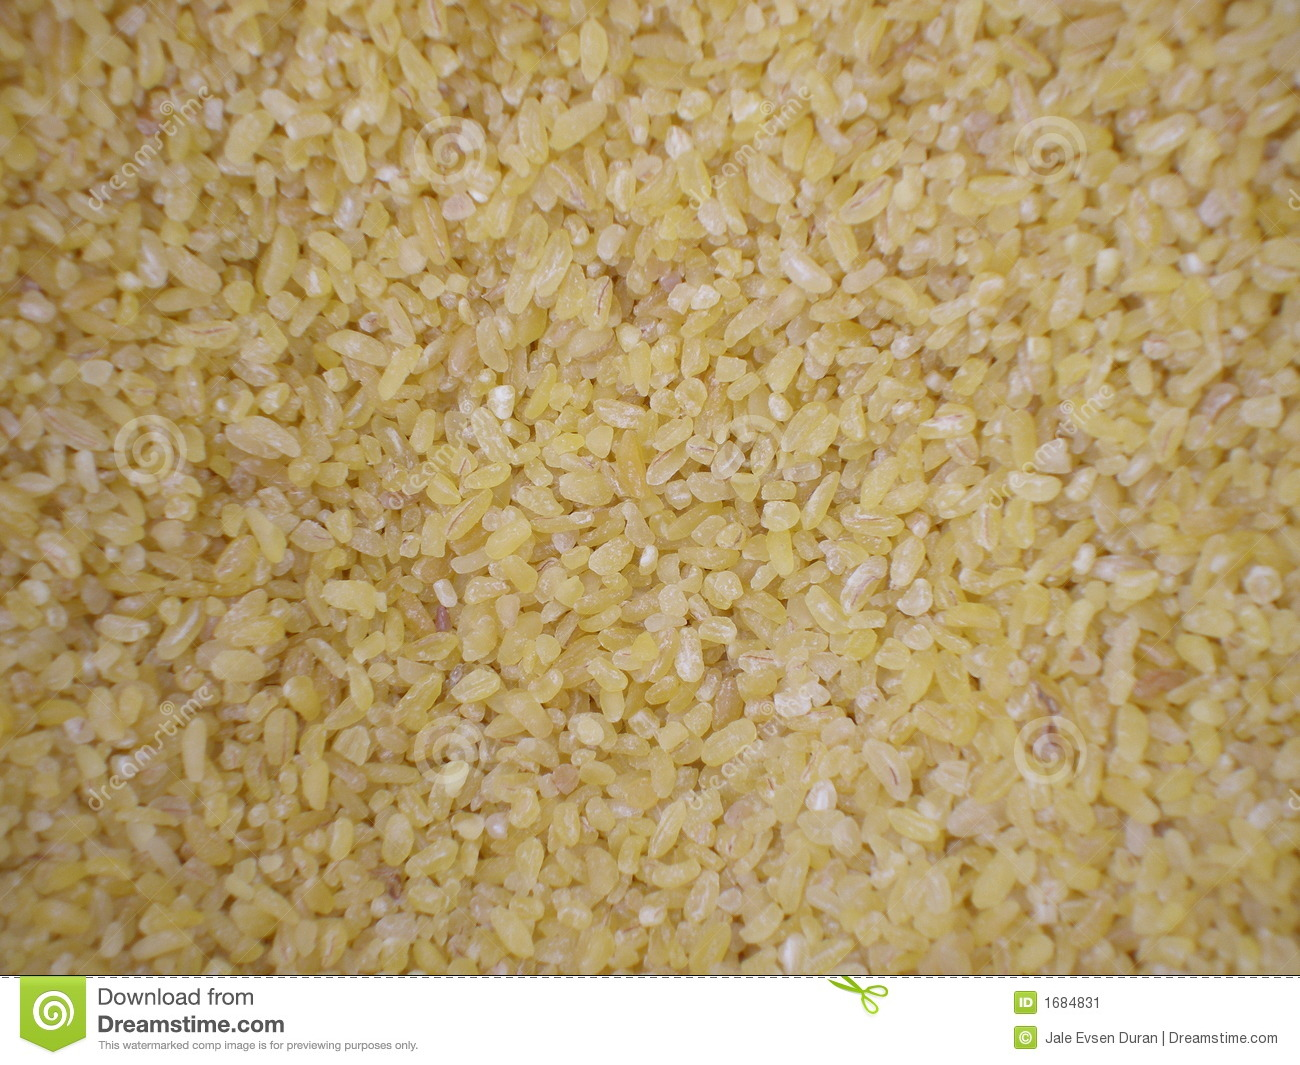 Stock image: bulgur weat in bulk